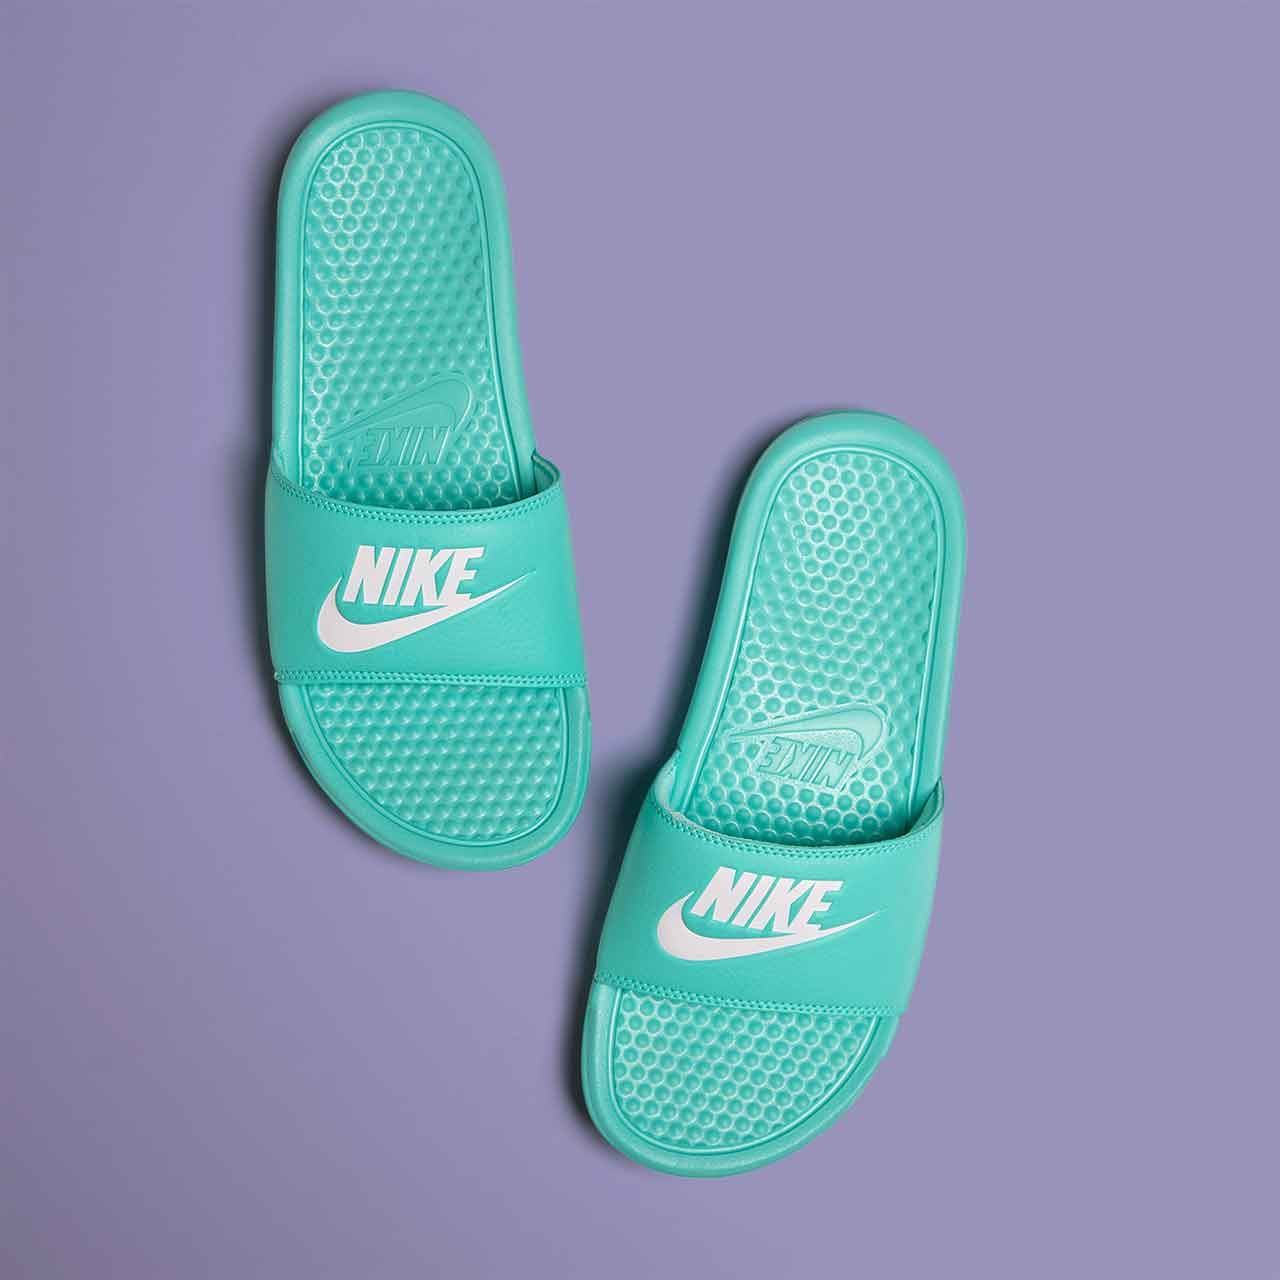 Tom Shoes Practically New No Box Pet And Smoke Free Home Nikes Shoes Flats Loafers Nike Running Shoes Women Nike Women Nike Shoes Women